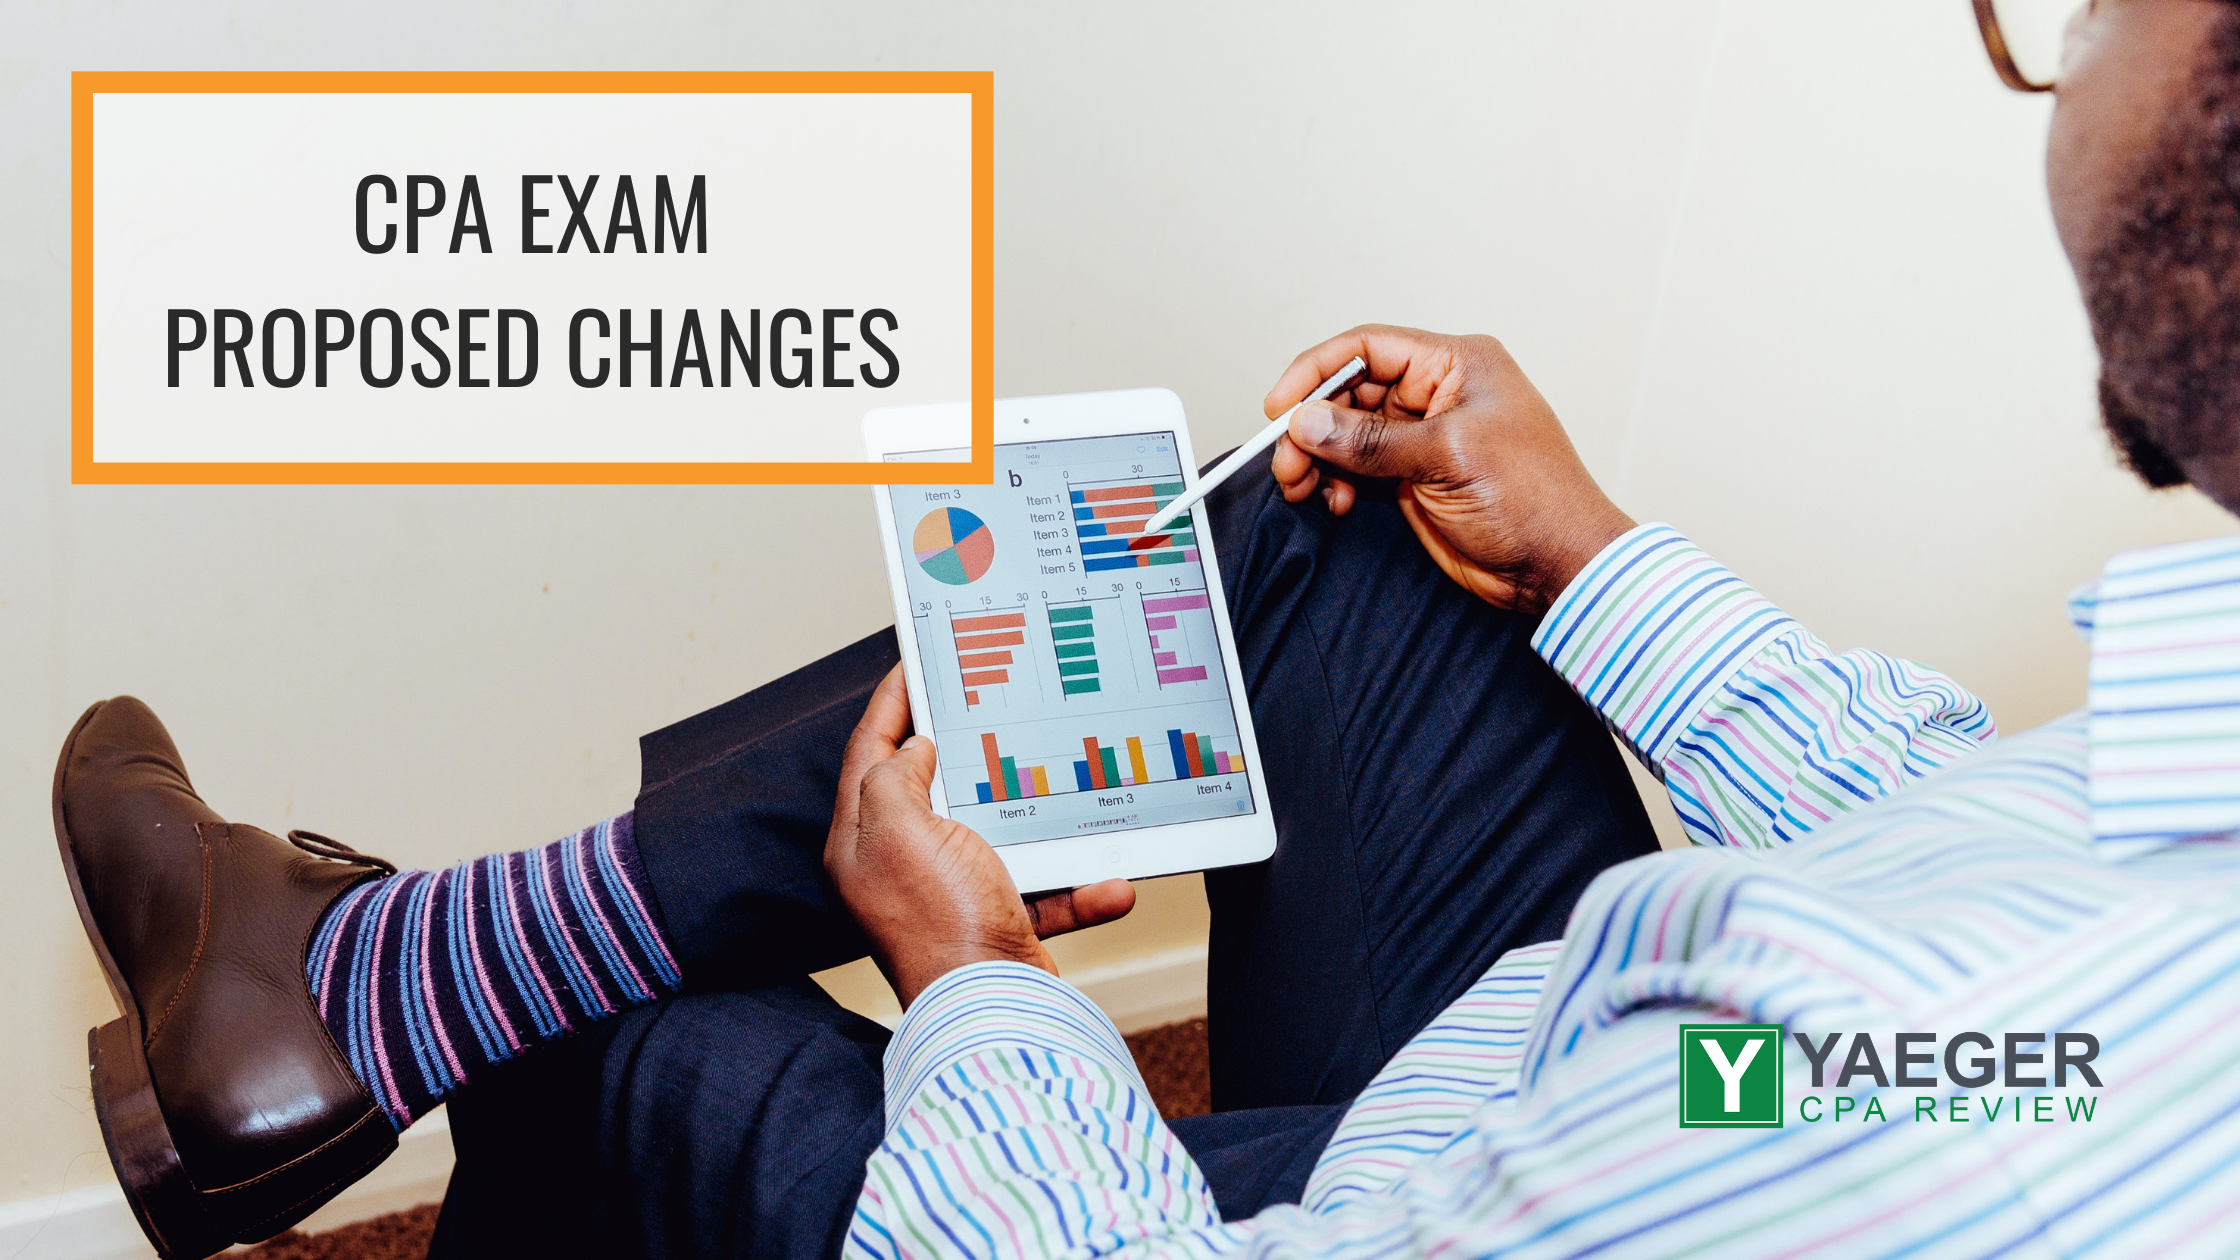 CPA Exam Proposed Changes